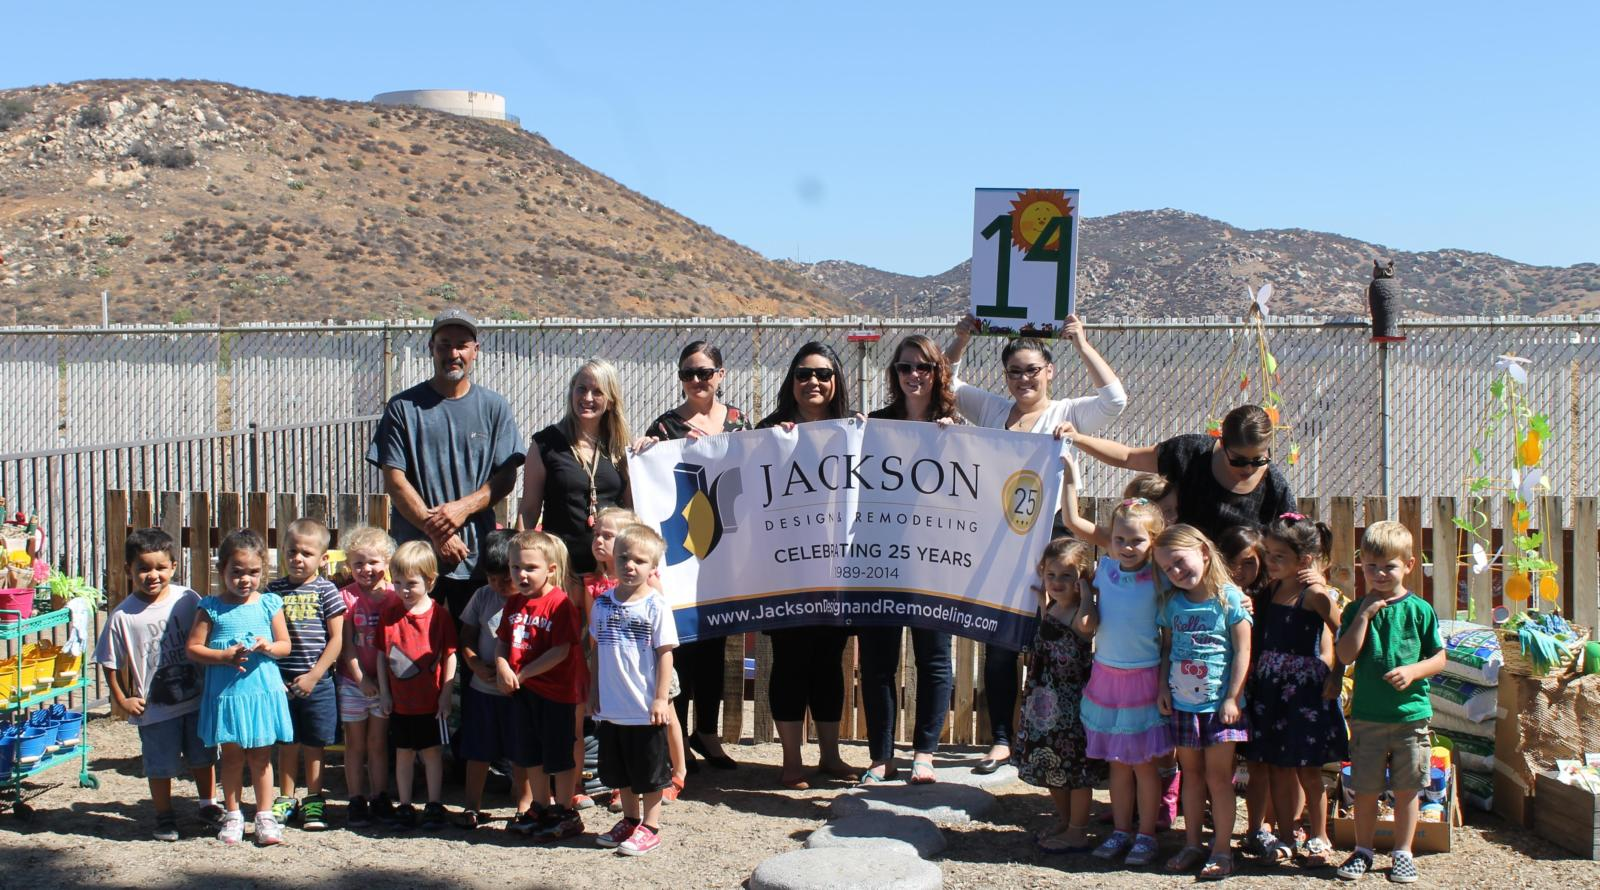 Lee and London Public Relations Client Jackson Design and Remodeling Celebrates 25th Anniversary by Giving Back to San Diego Community in 25 Acts of Giving